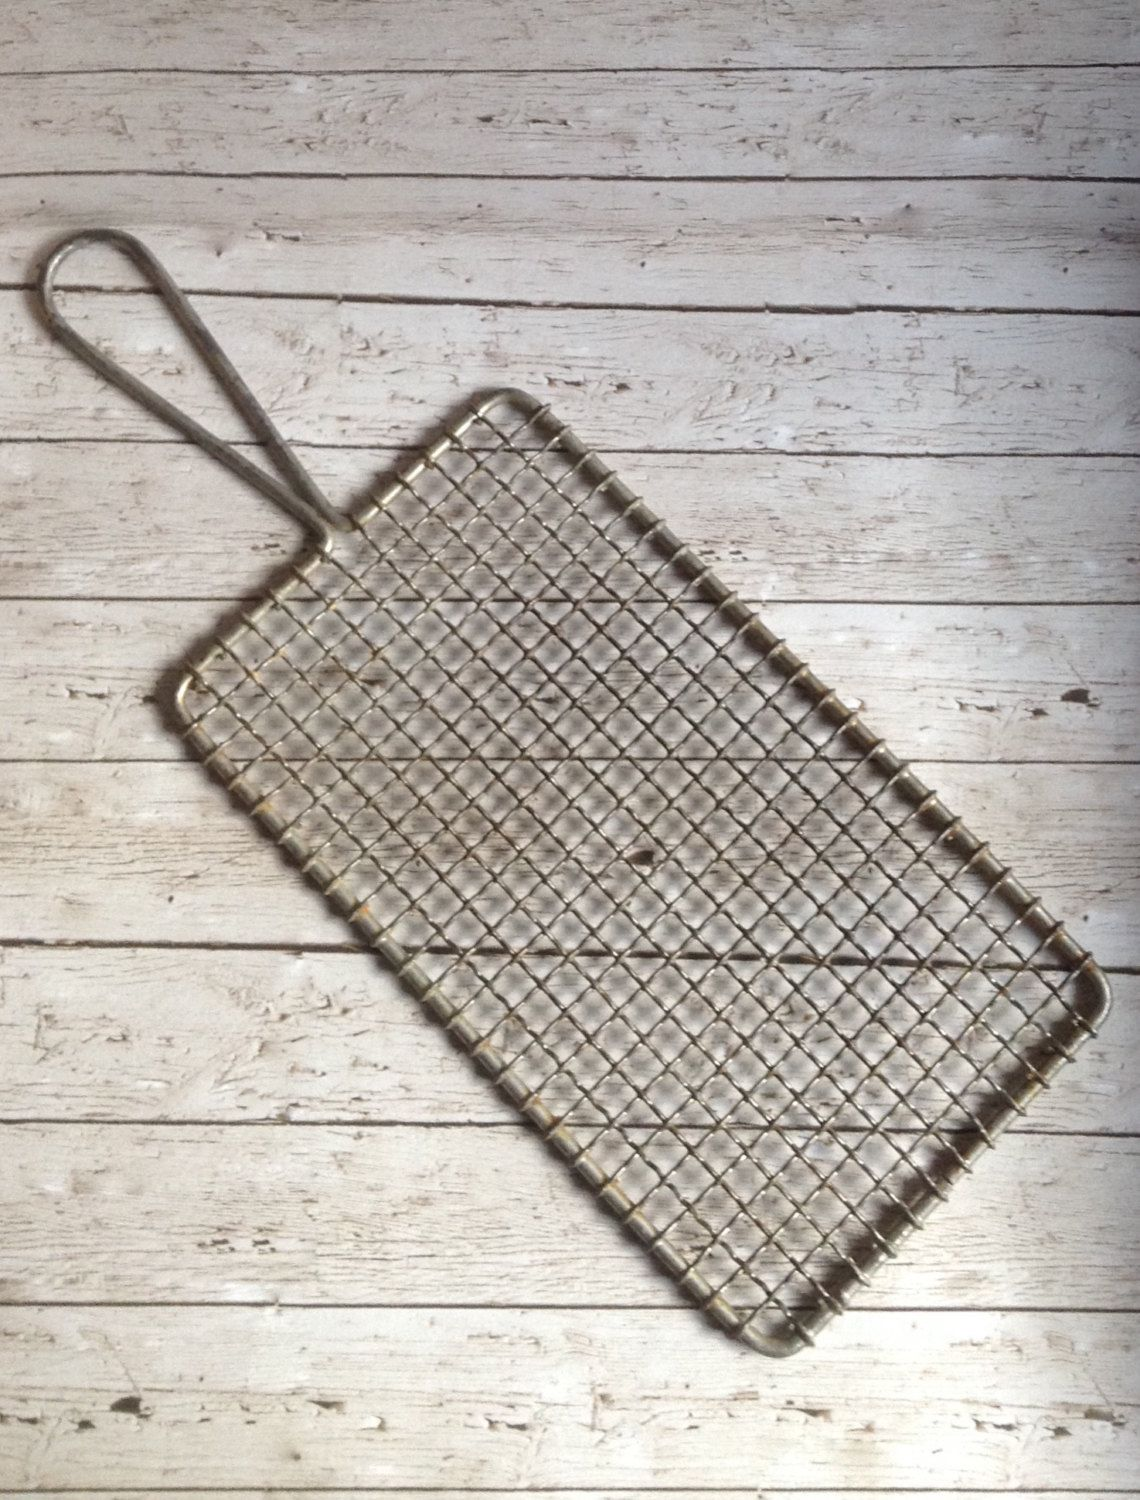 Vintage Cooling Rack Vintage Grater Drying Rack Metal Grater